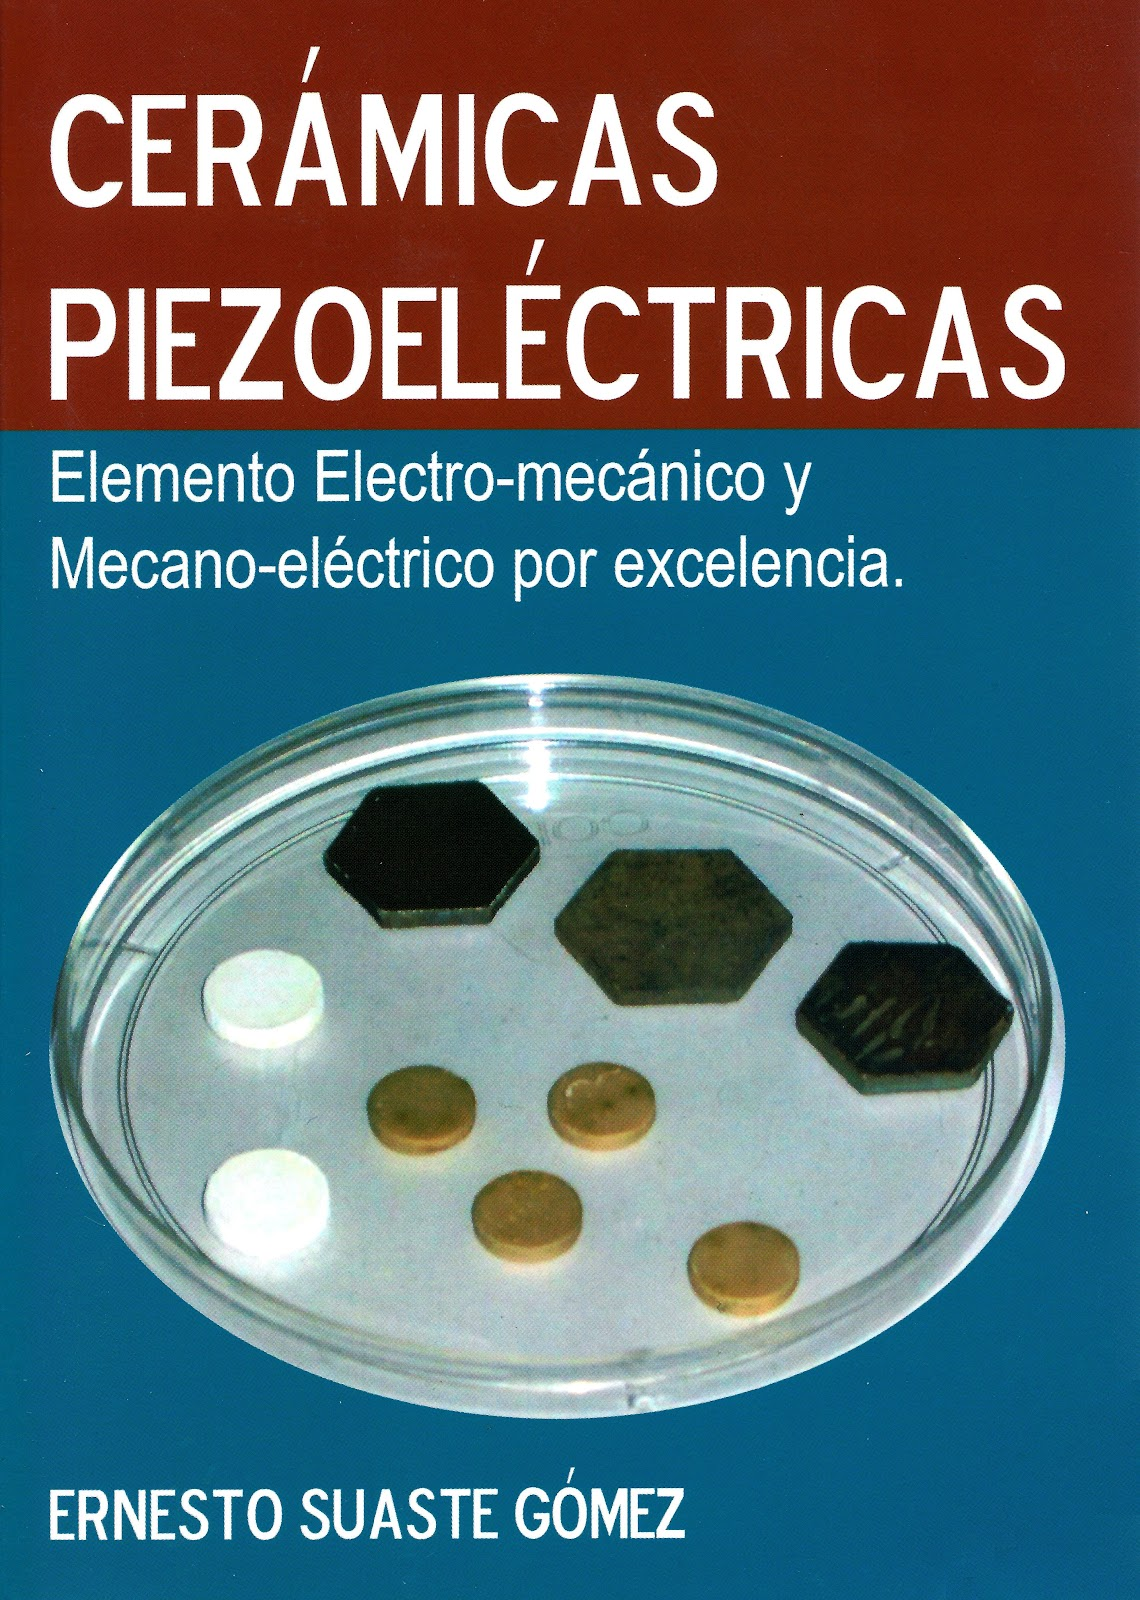 What Are Piezoelectric Ceramics Objectives Template Pzt